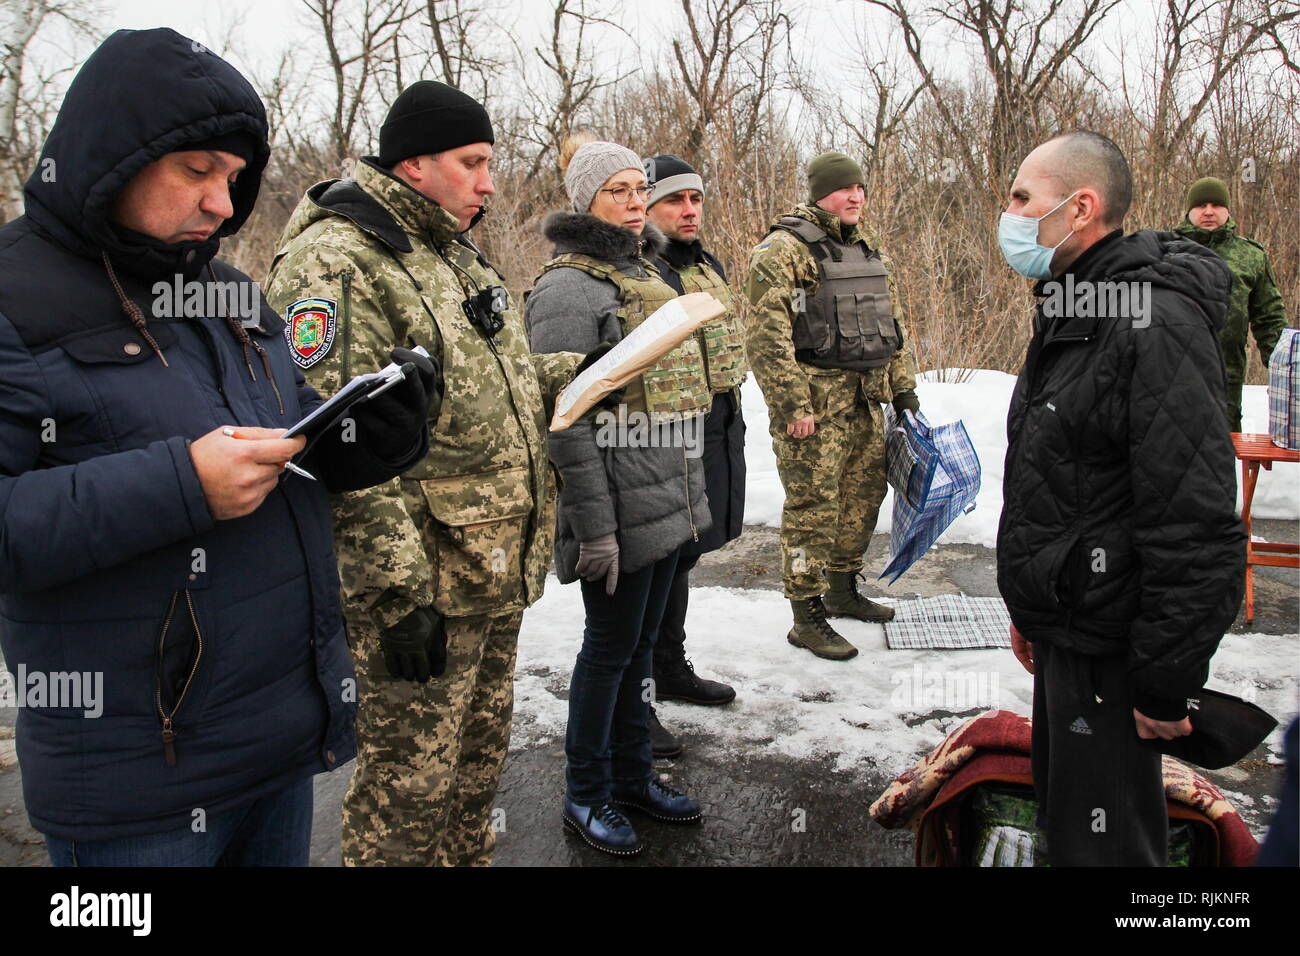 Schastye, Ukraine. 07th Feb, 2019. LUGANSK REGION, UKRAINE - FEBRUARY 7, 2019: Ukrainian officials (L) during the handover of 33 people who were convicted in east Ukraine before 2014 and who want to serve their terms outside Donbass, by the Lugansk People's Republic to the Kiev authorities. Alexander Reka/TASS Credit: ITAR-TASS News Agency/Alamy Live News - Stock Image